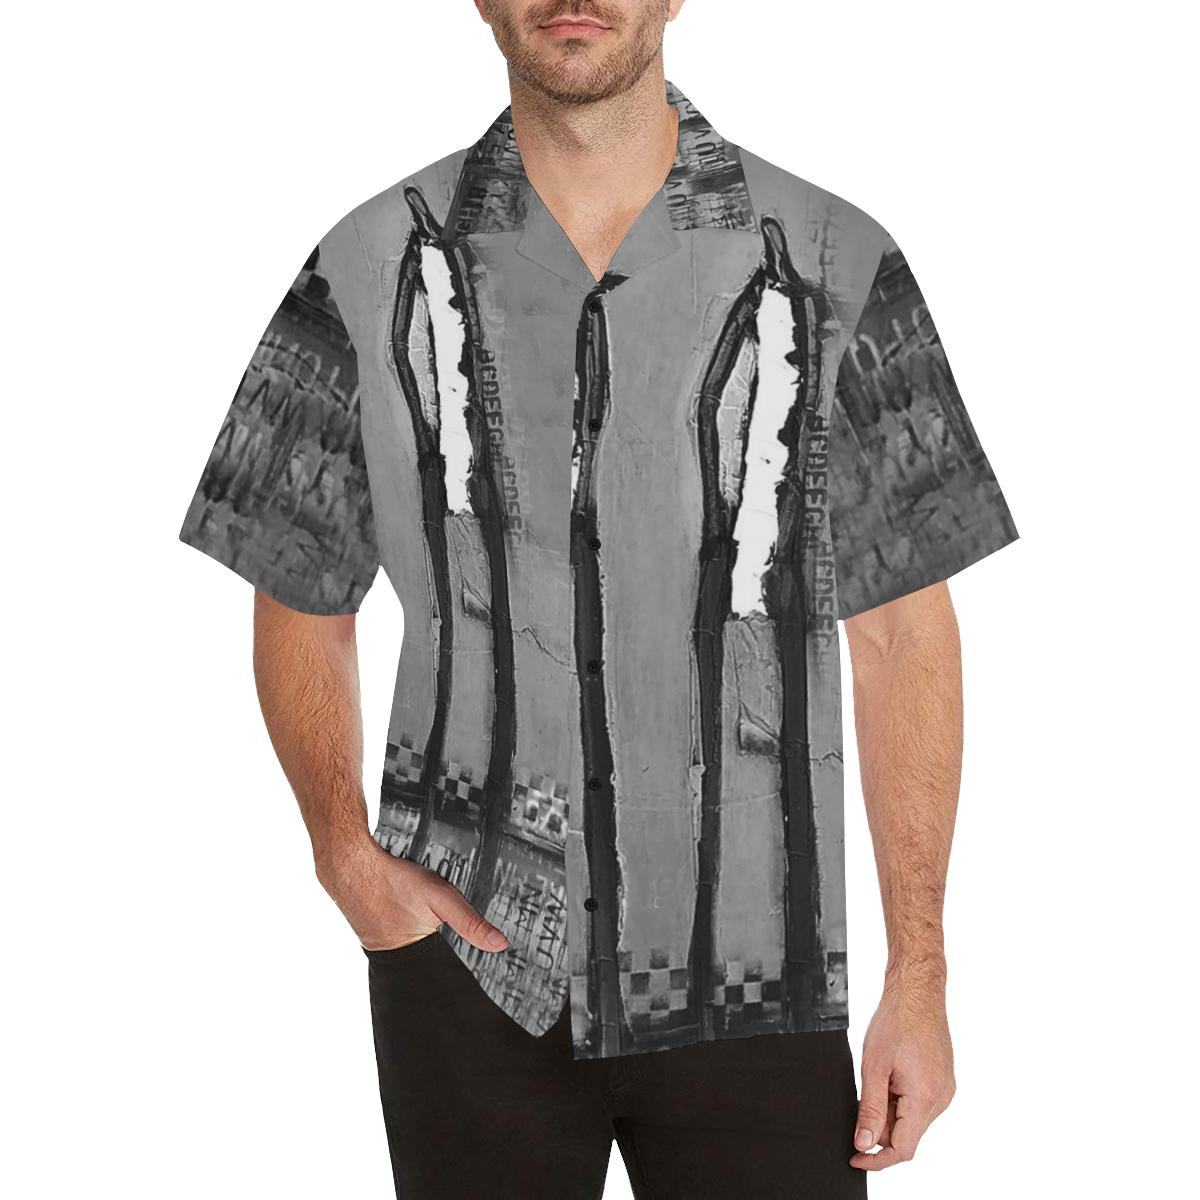 All-over Shirts Black & White DeBilzan Hawaiian Shirt